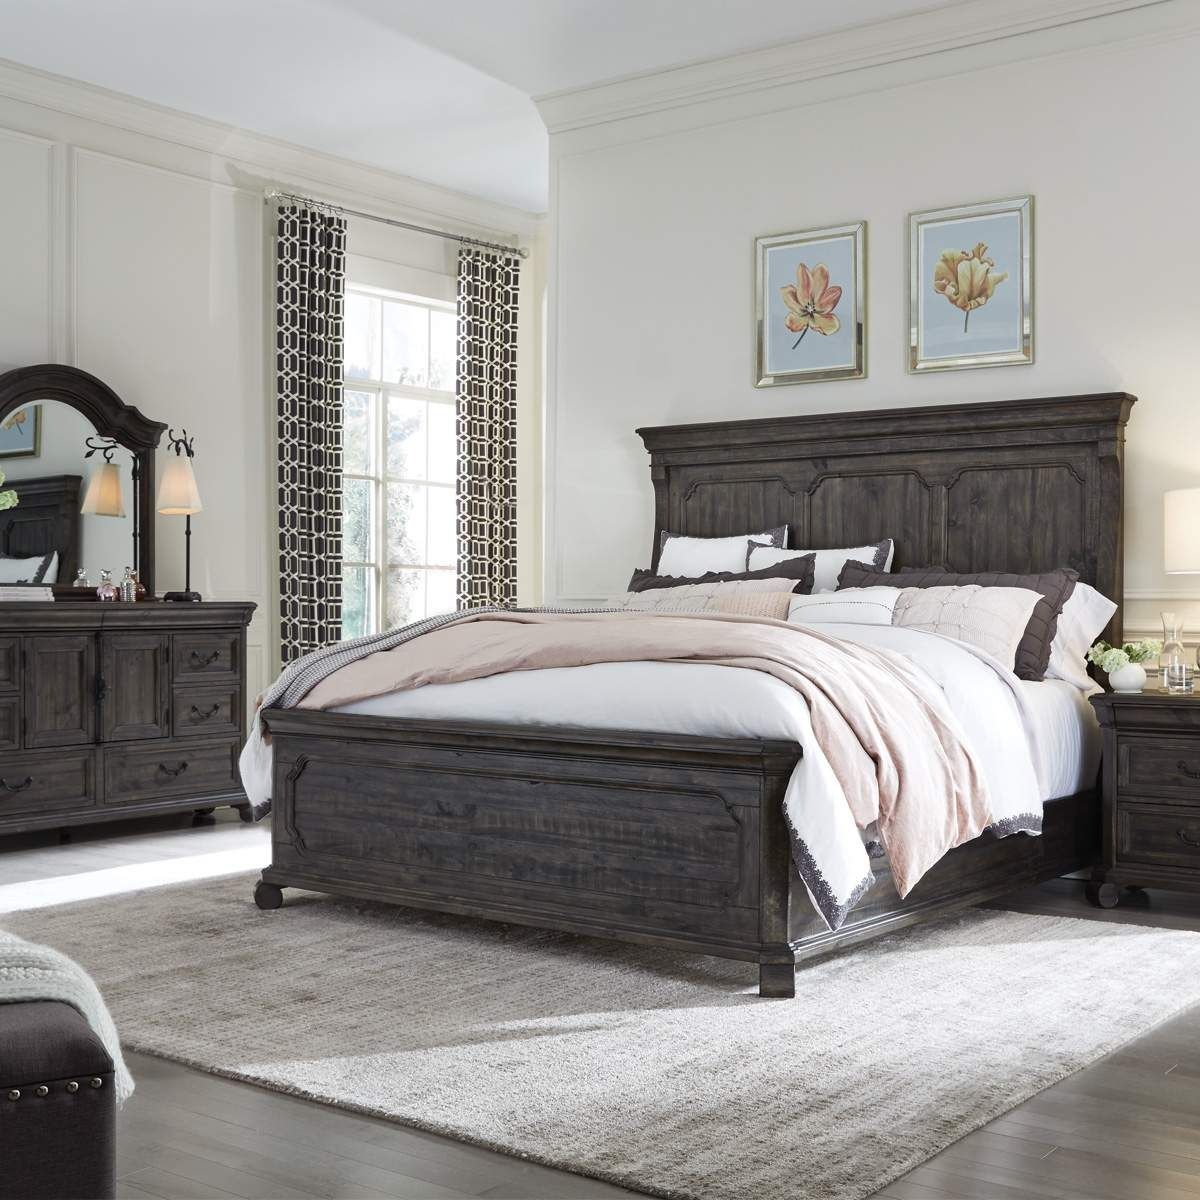 Hacienda Bedroom Furniture Sets Remodel Bedroom Bedroom Sets